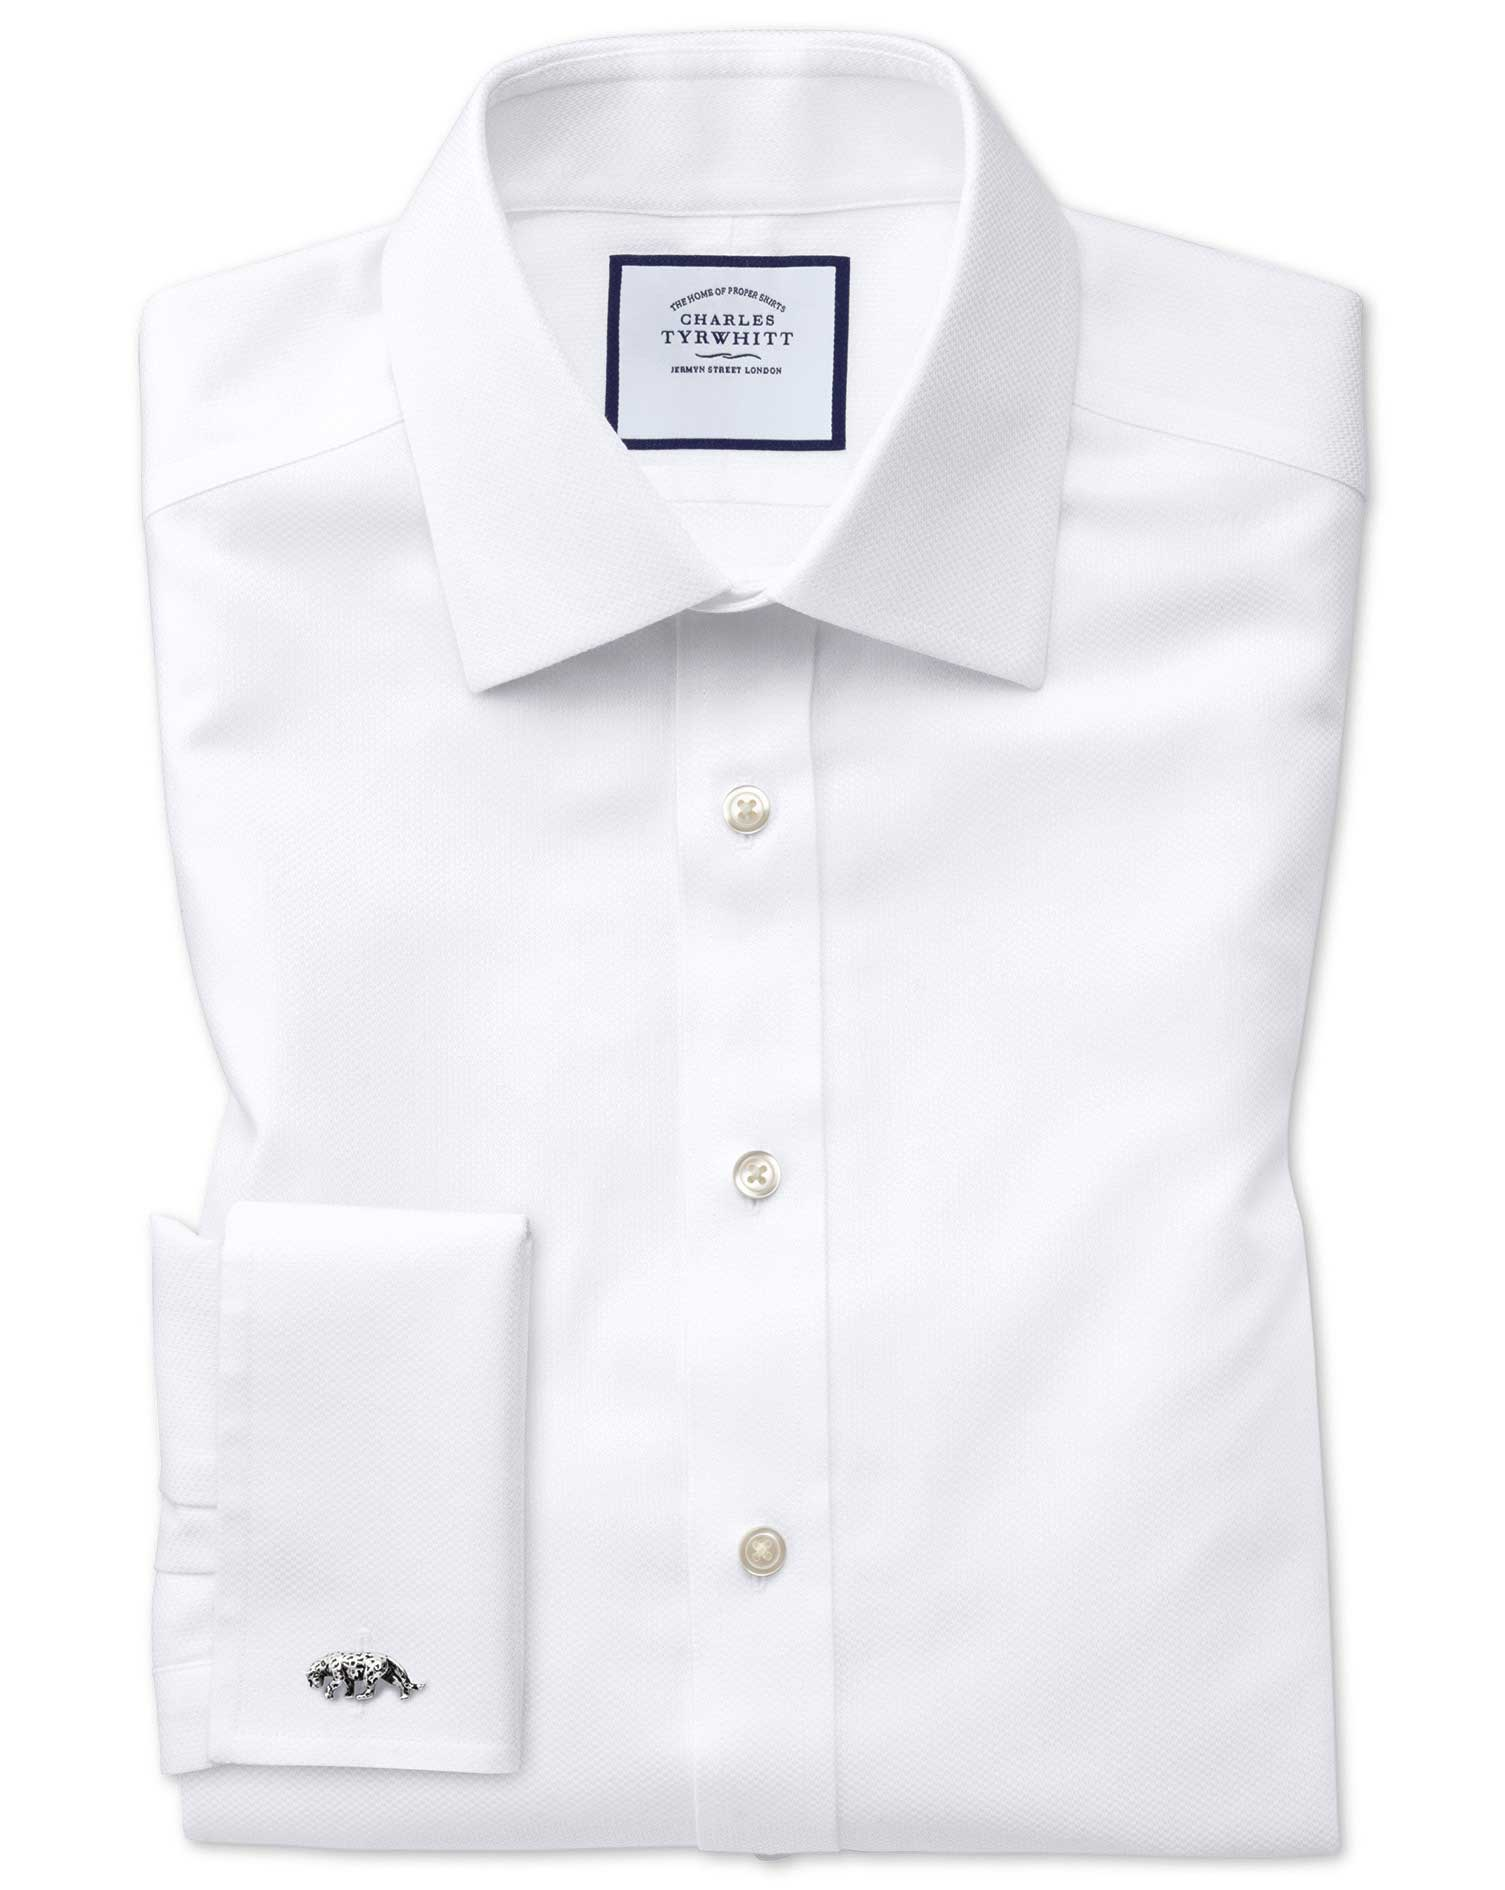 Slim Fit Non-Iron White Arrow Weave Cotton Formal Shirt Single Cuff Size 15/34 by Charles Tyrwhitt